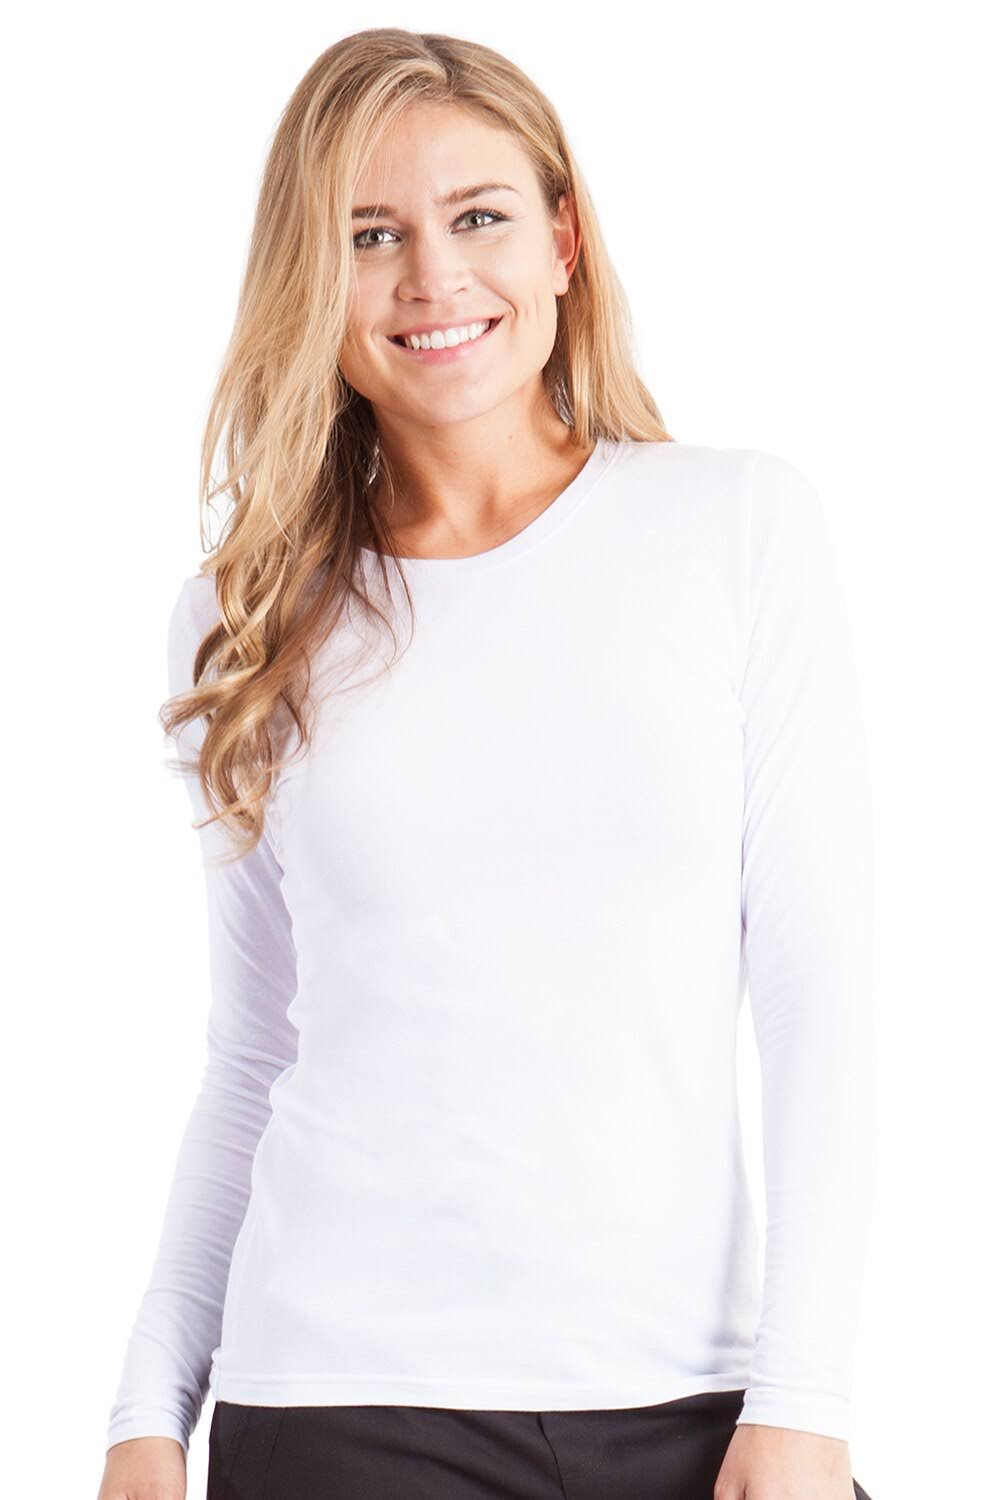 Healing Hands Womens Cotton Solid Casual Top - White, XX-Large